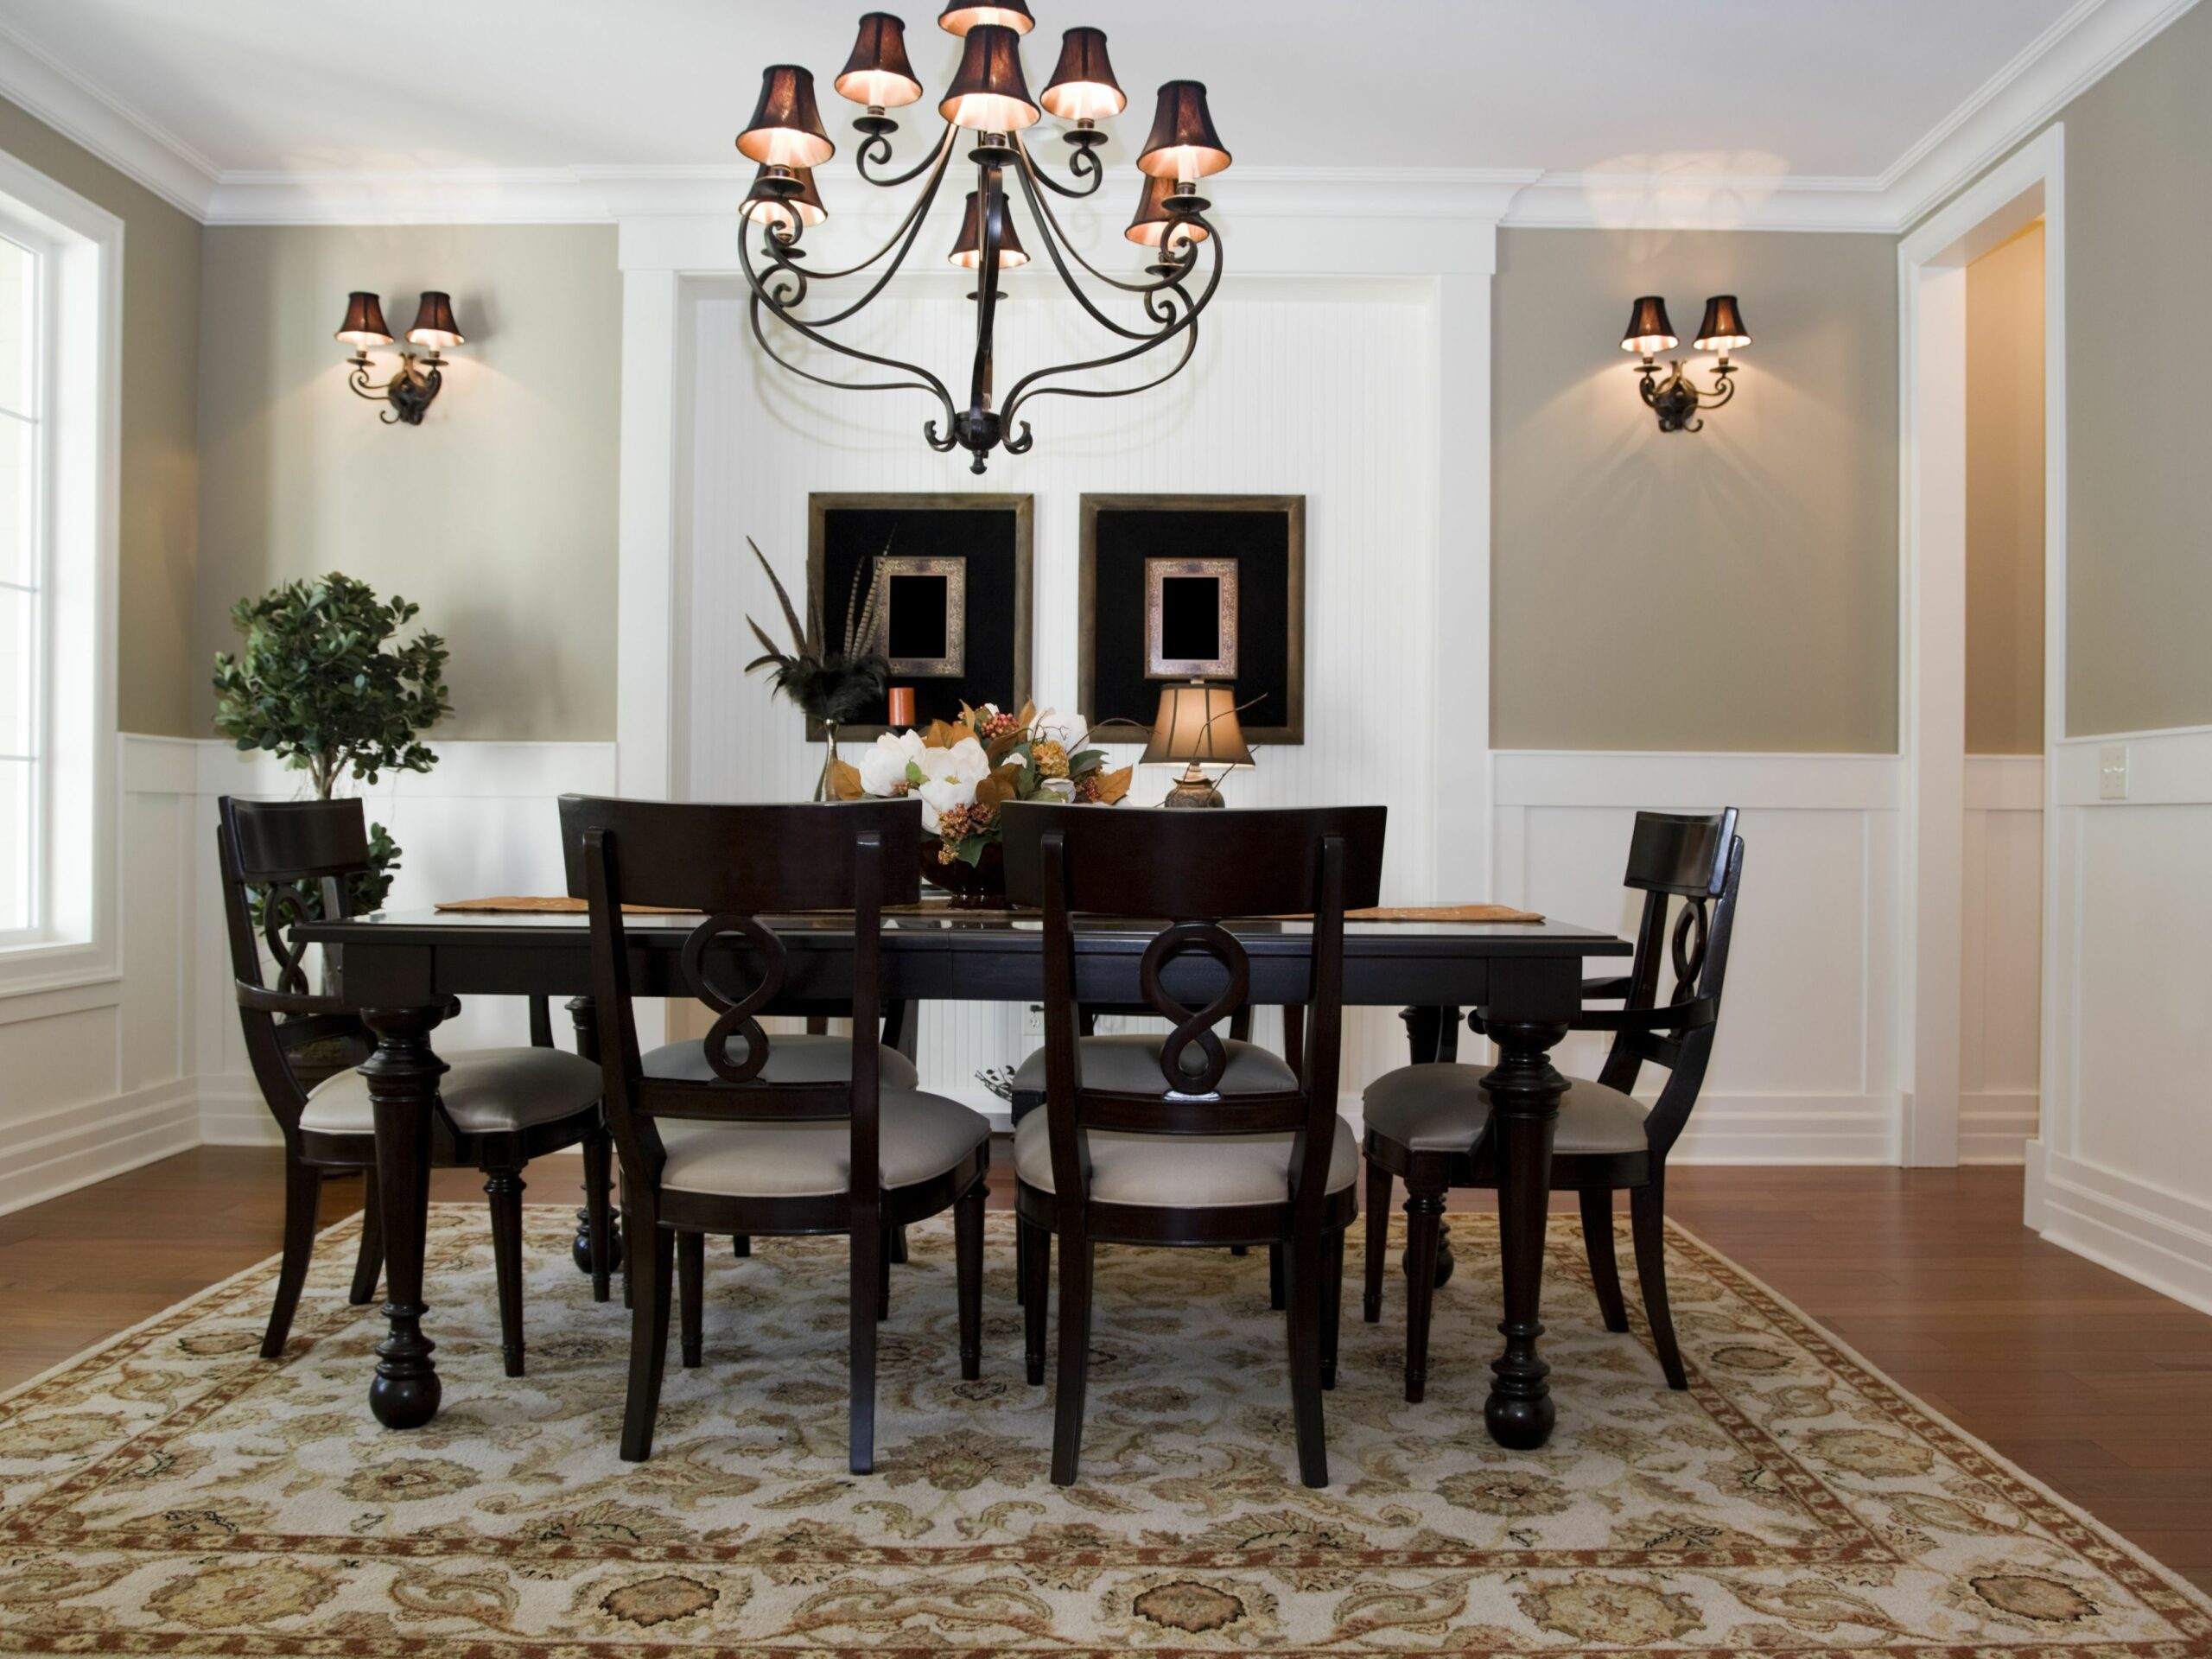 A Chair Rail Gives Your Home a Classic Look - dining room millwork ideas